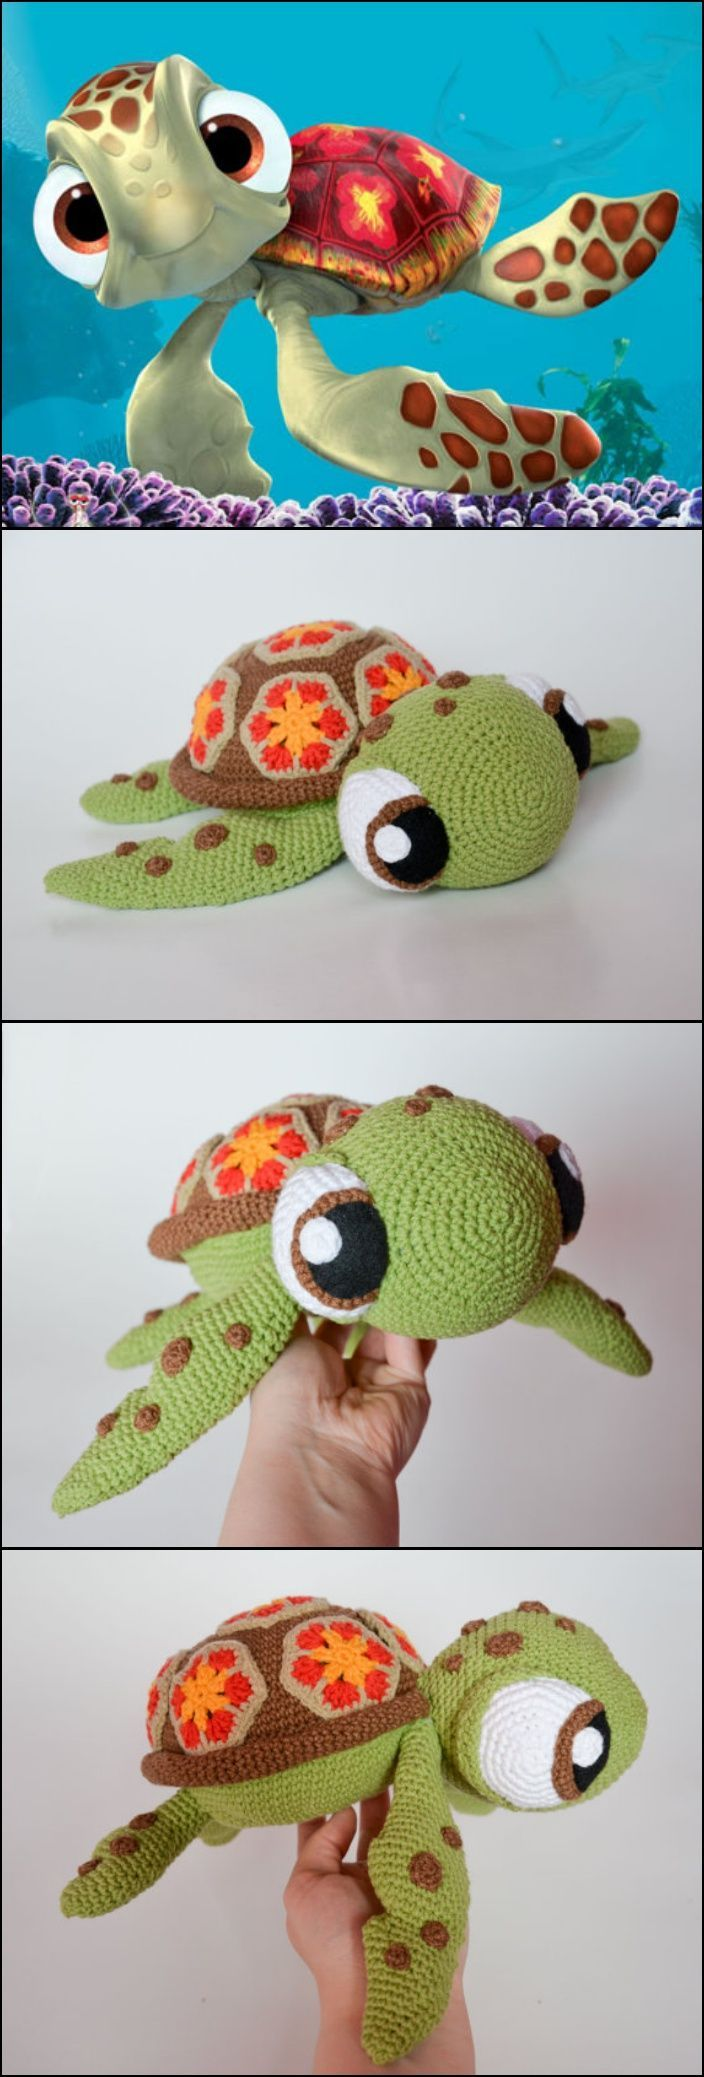 Amigurumi Sailor Octopus Pattern Free : 17 Best ideas about Sea Turtle Crafts on Pinterest ...